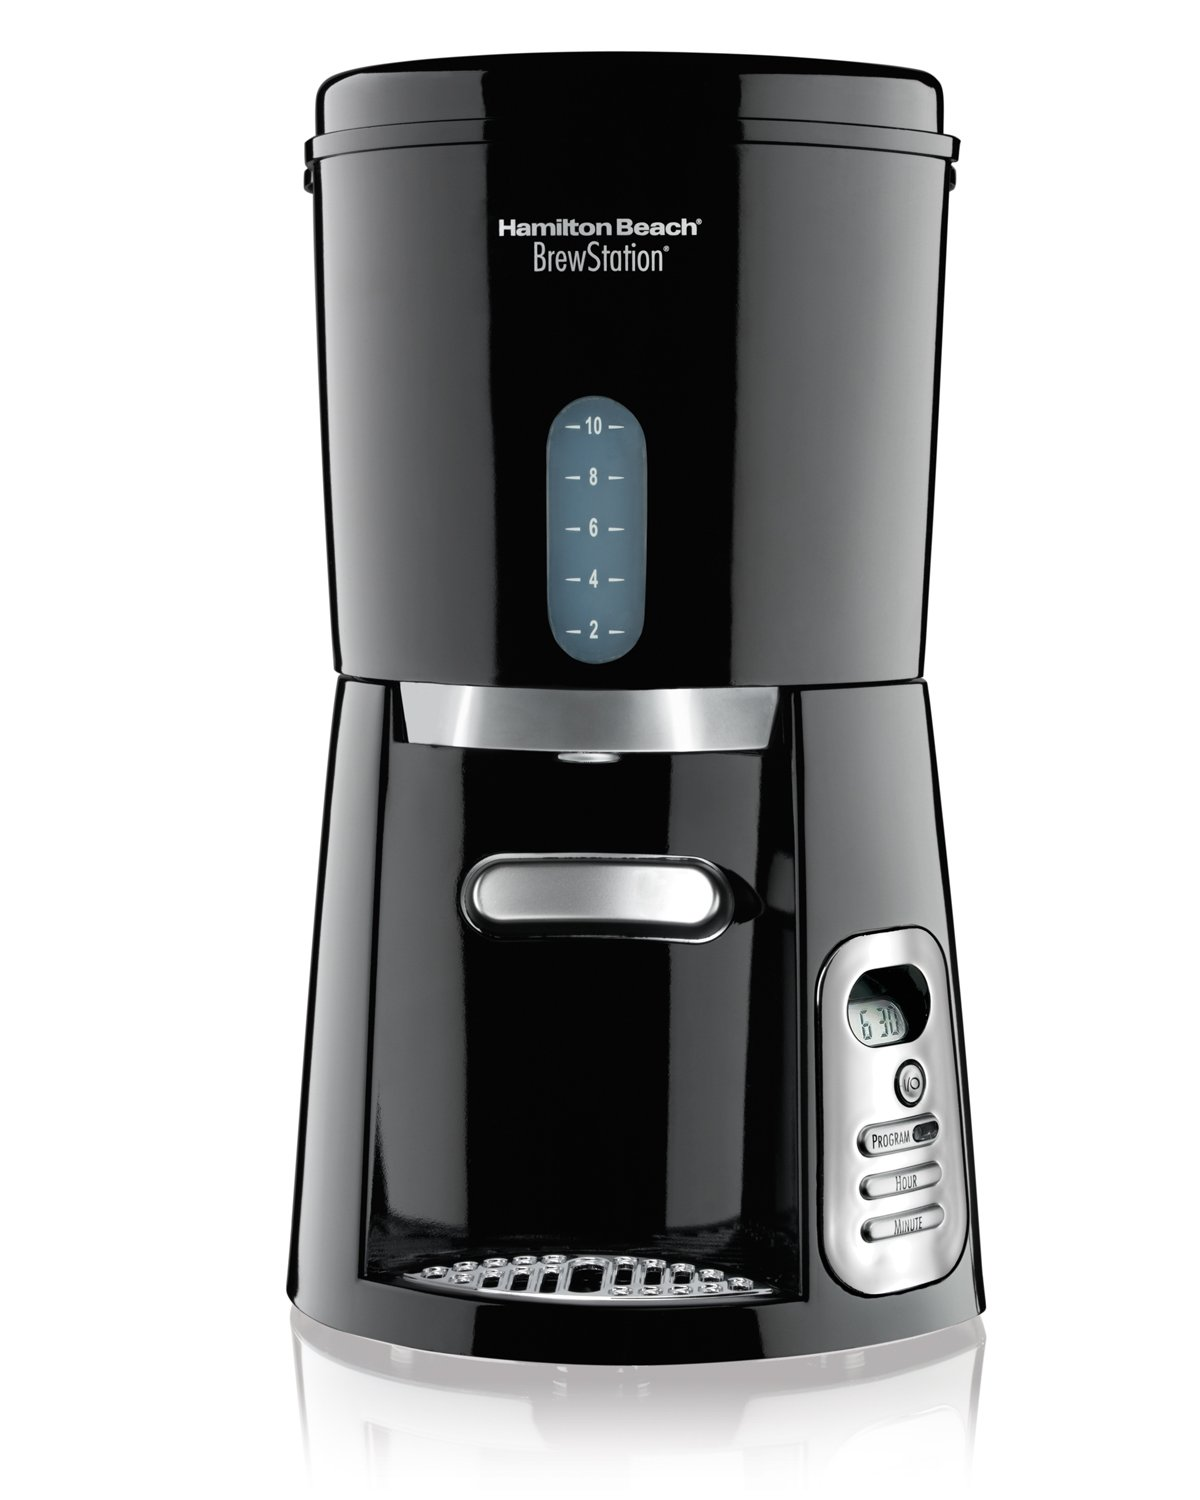 Hamilton Beach 10-Cup Coffee Maker, Programmable BrewStation Dispensing Coffee Machine (47380)